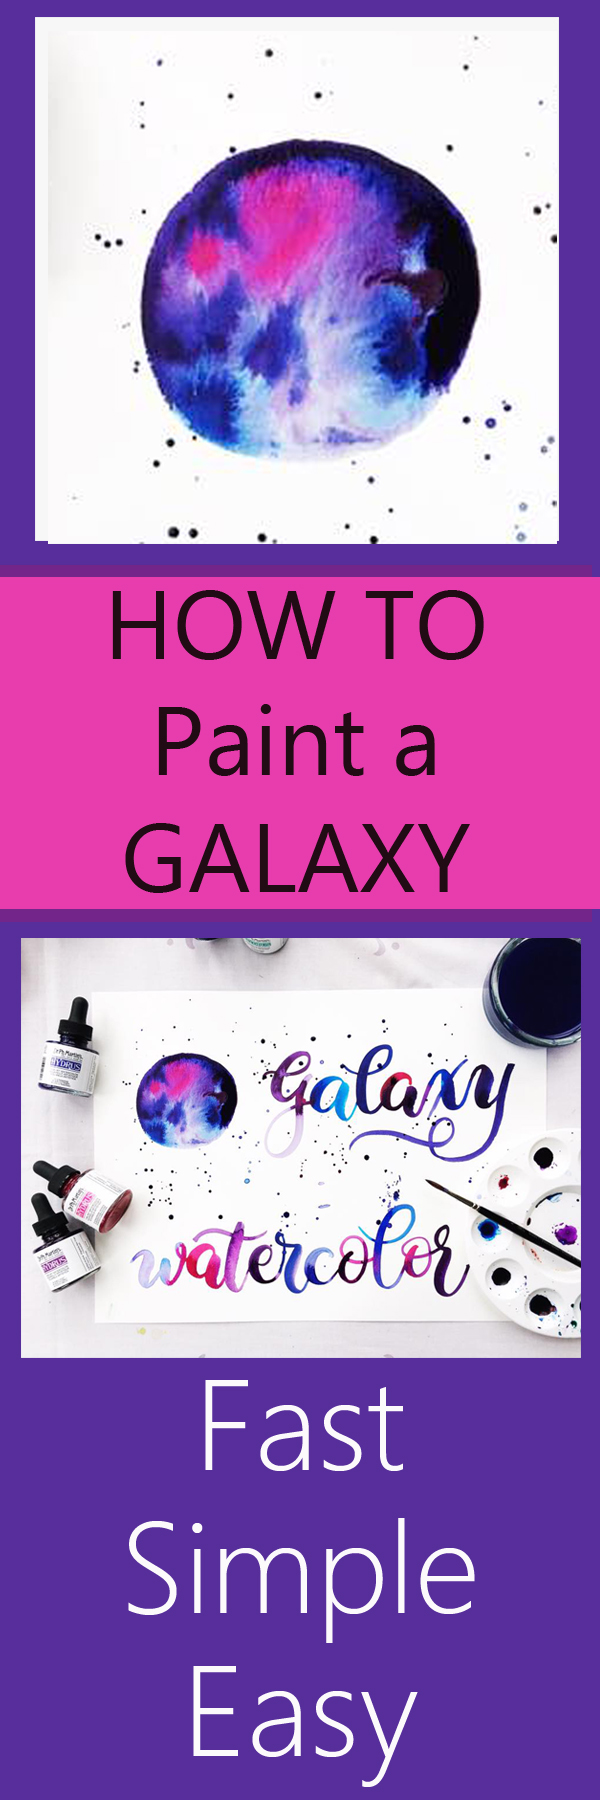 One of the best YouTube tutorials about galaxy painting I've found www.kellycreates.ca